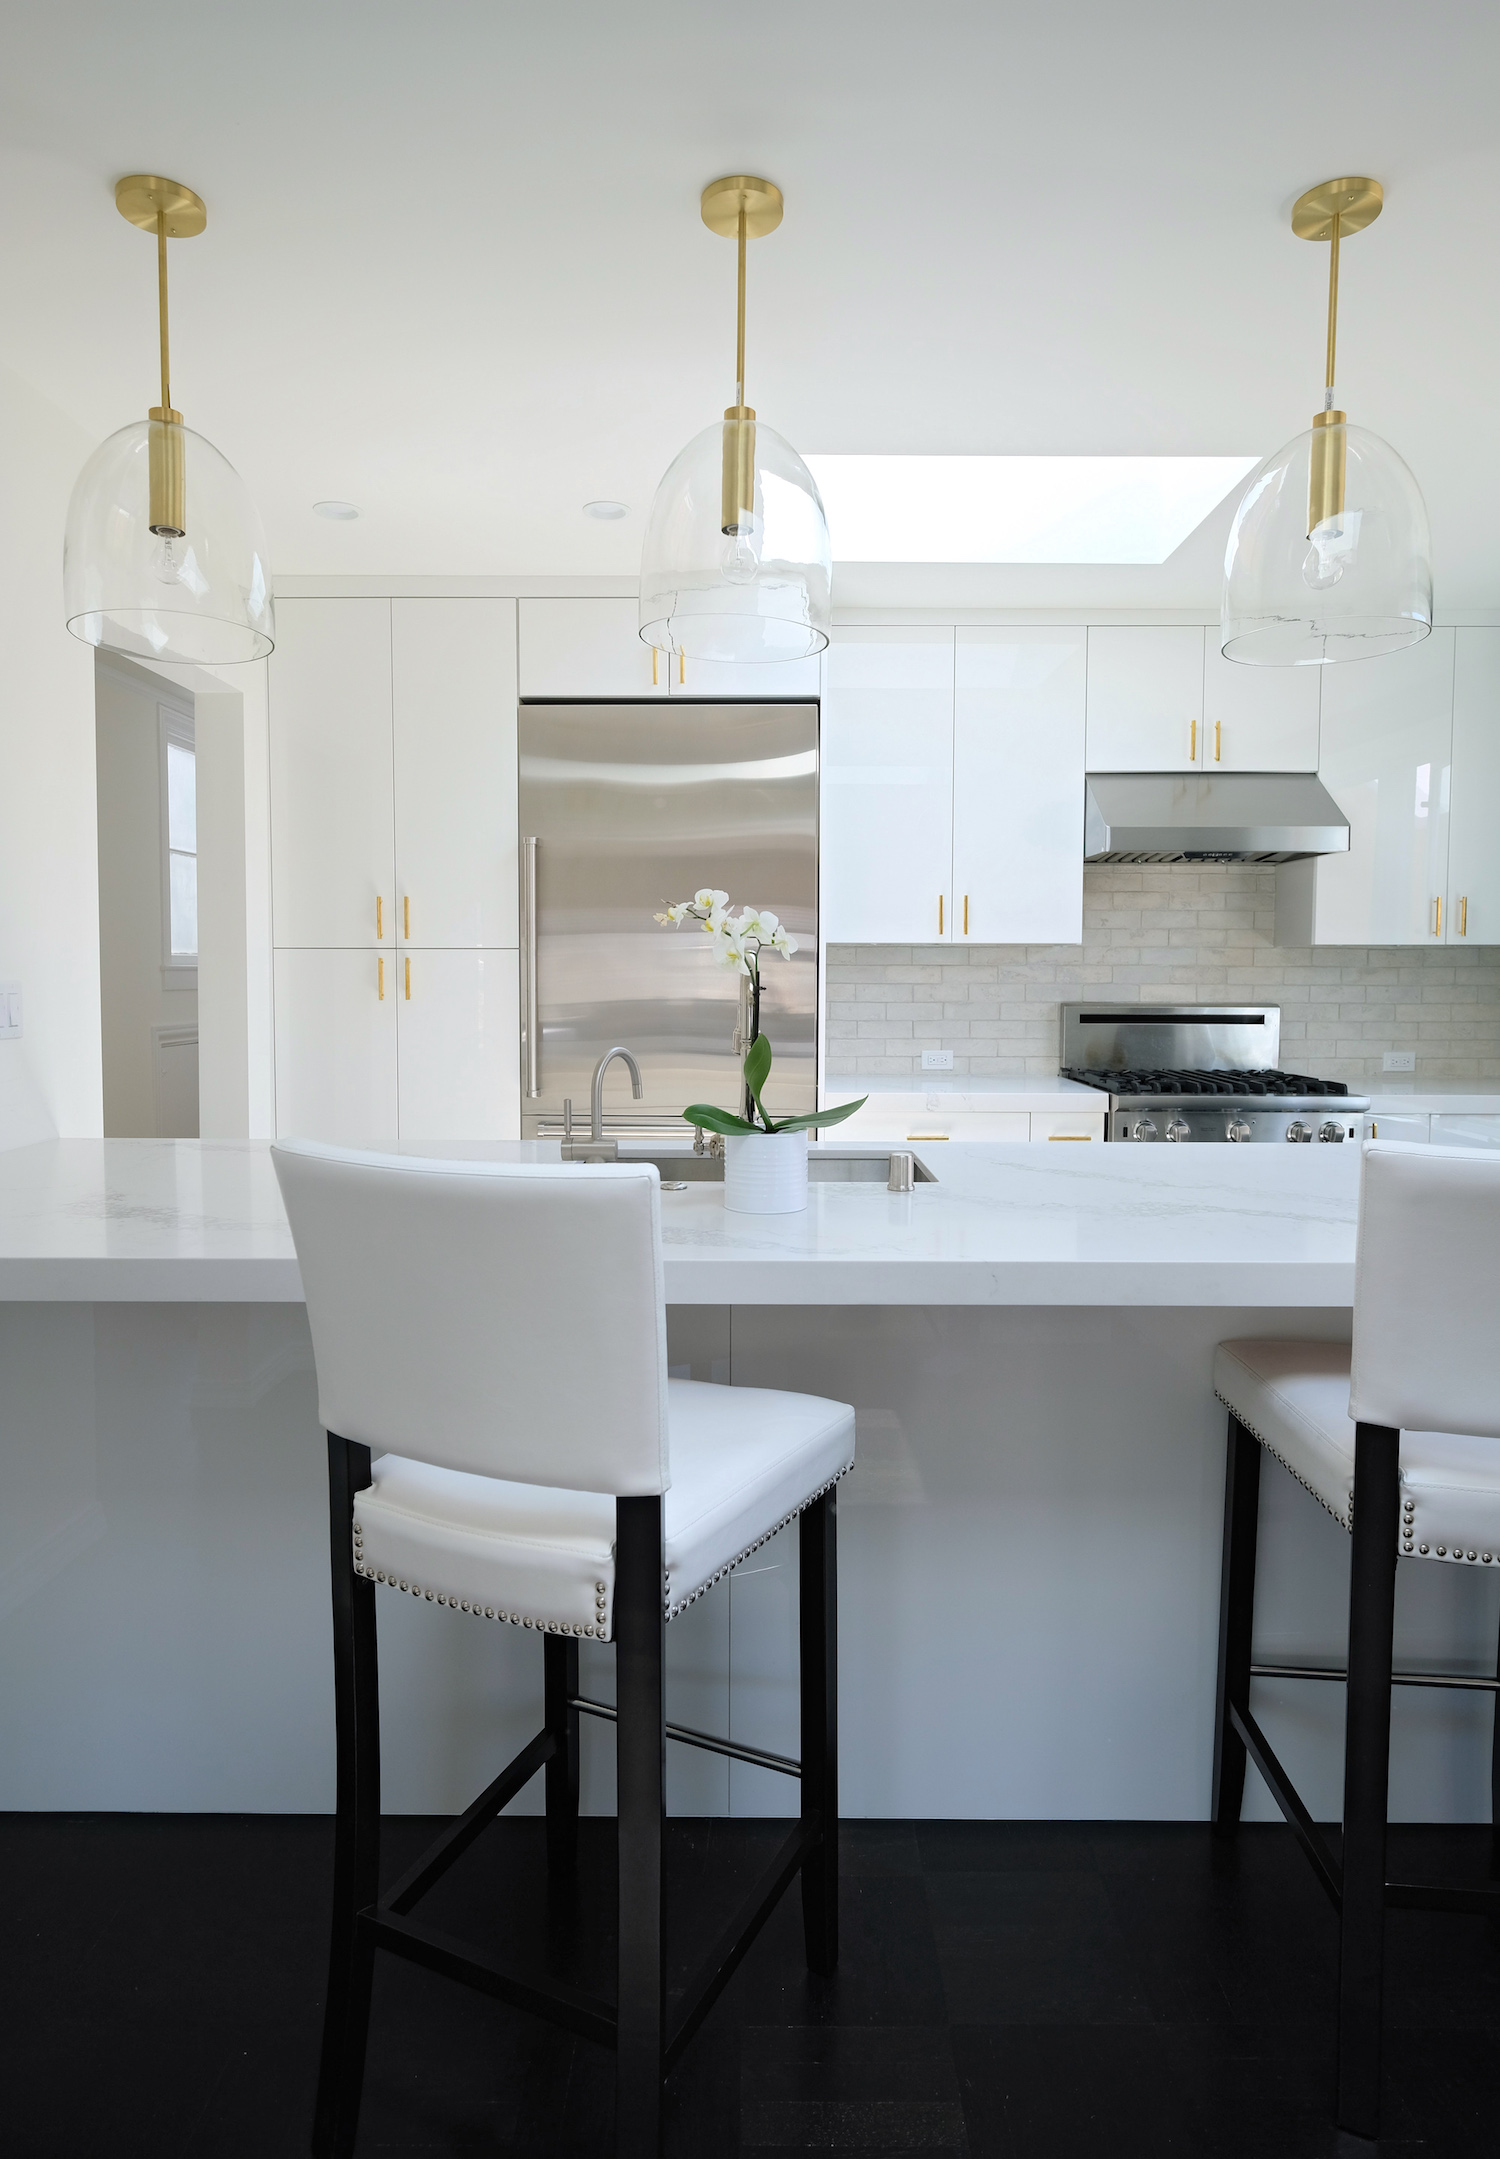 white kitchen with white marble counters and bar seating and gold accents.jpg